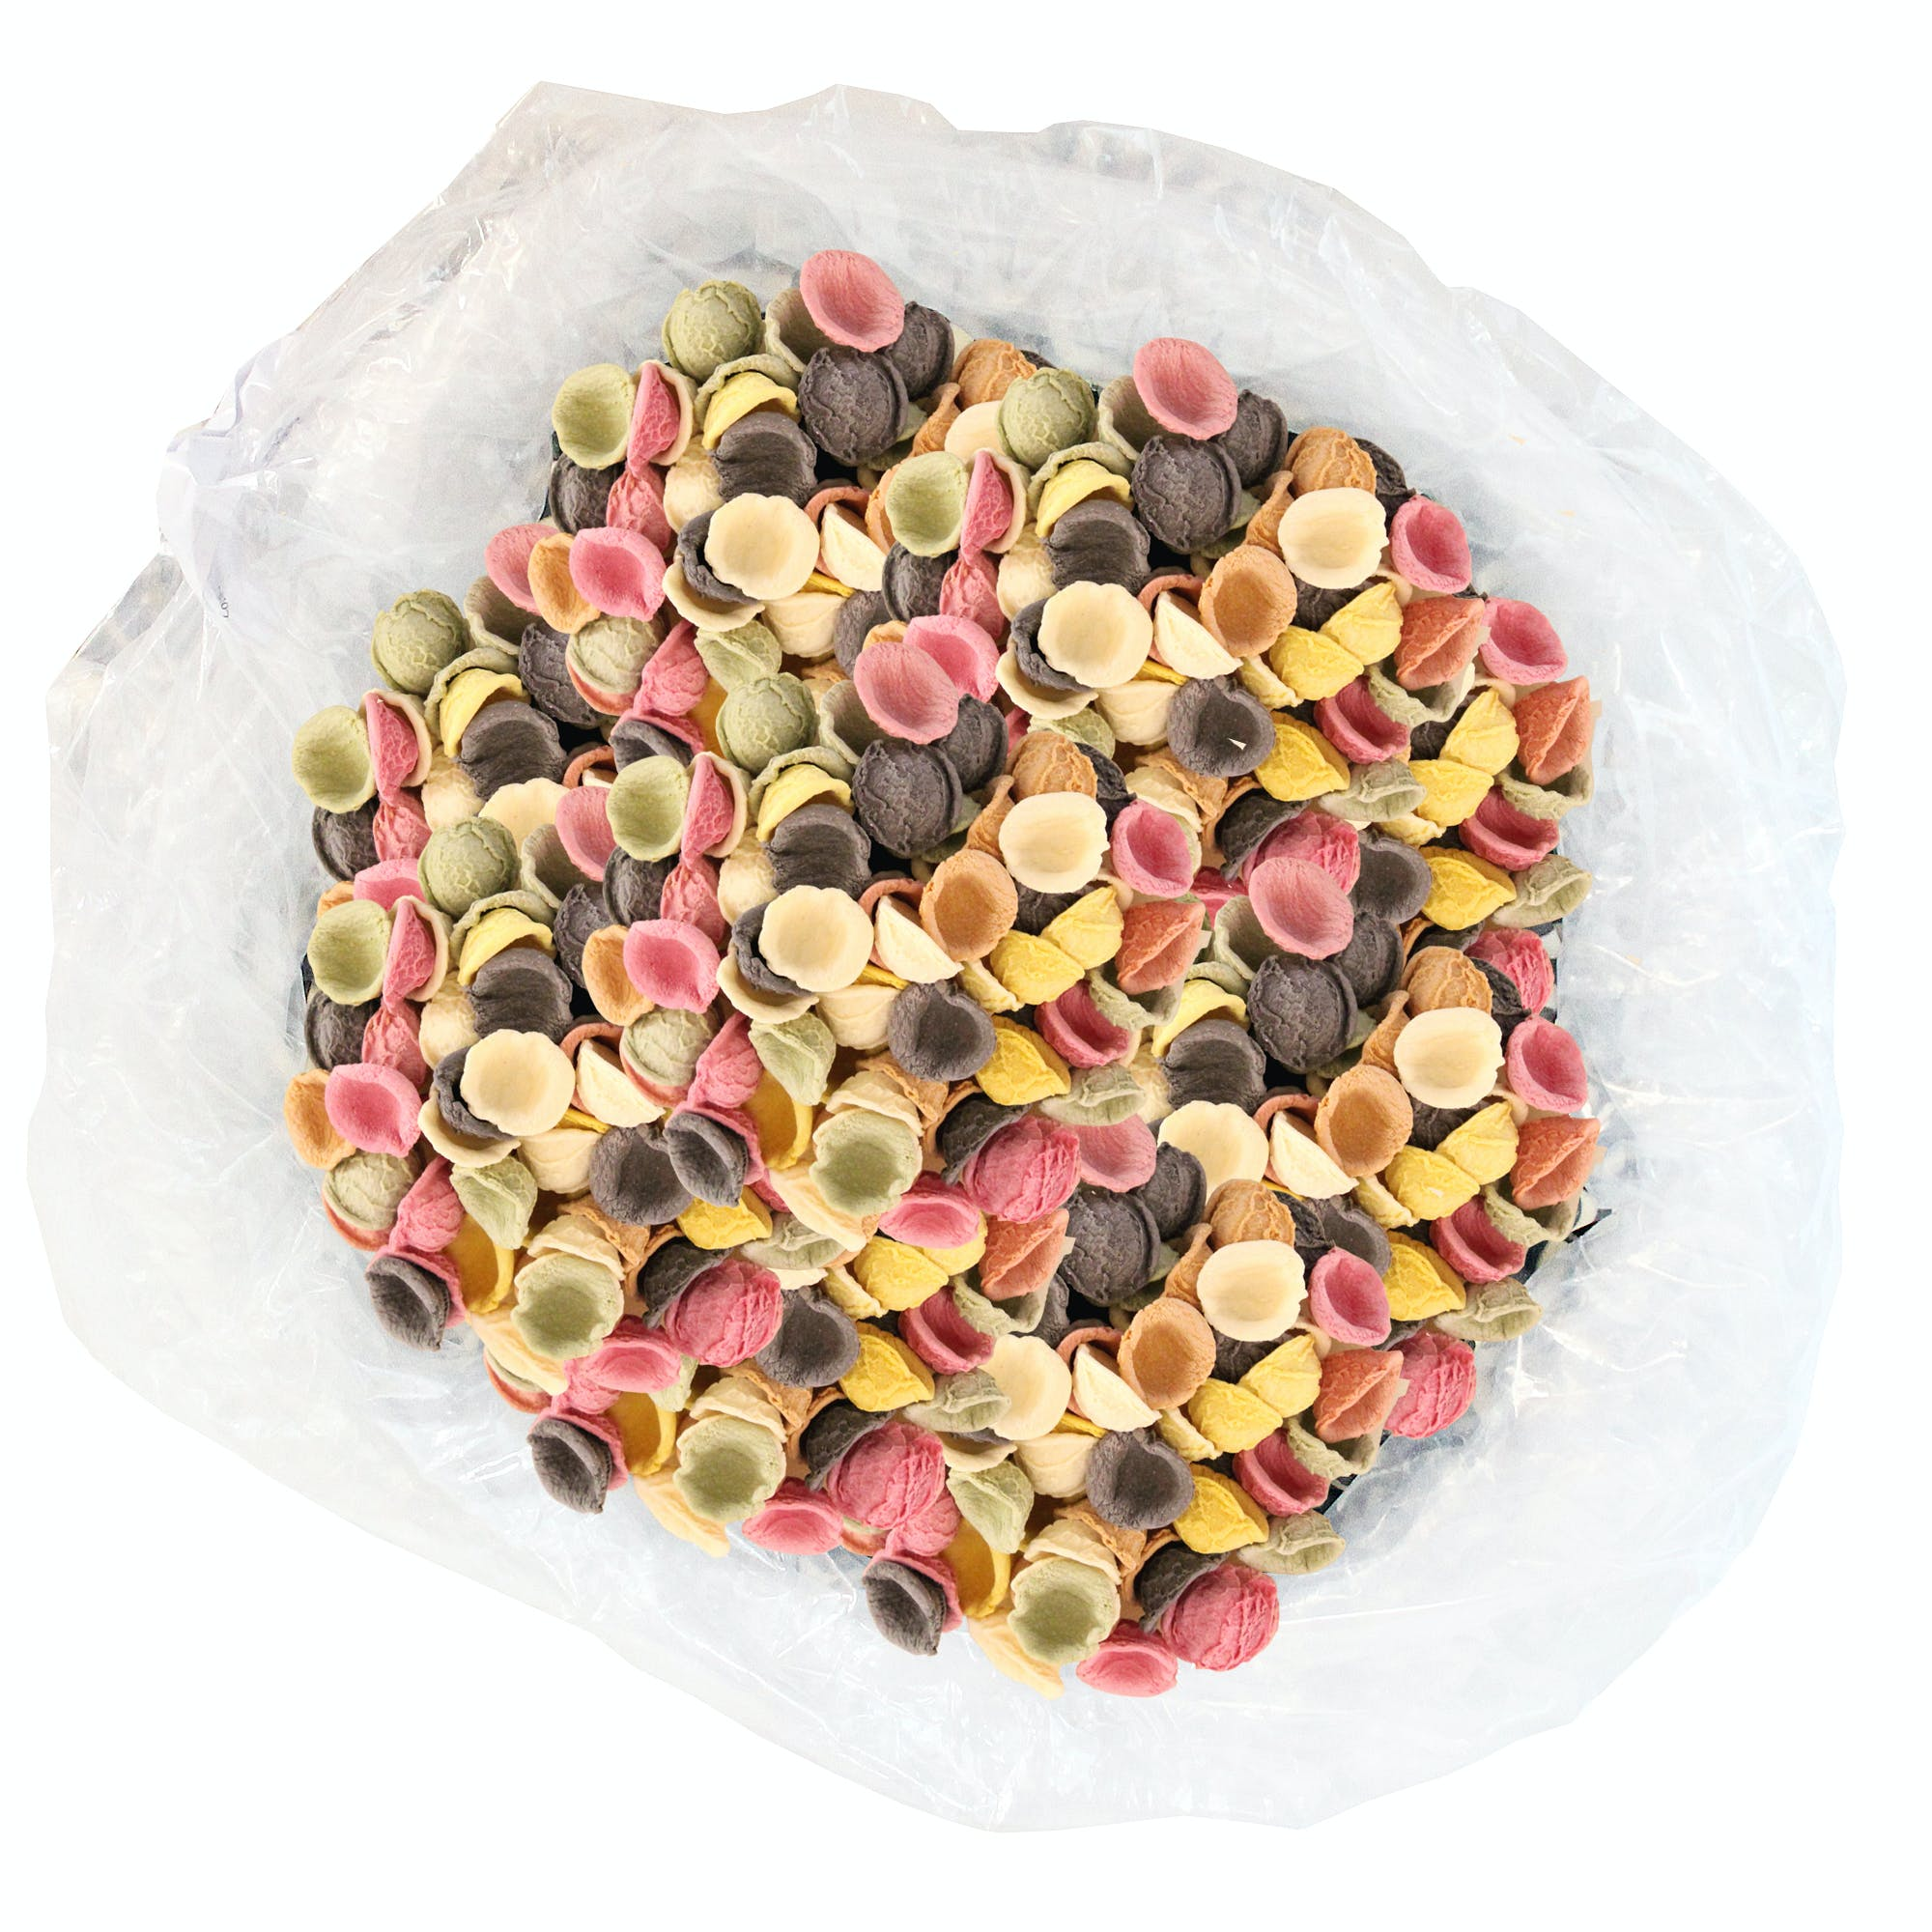 Little Ears Tri-Colored Bulk Pasta Pasta sold by M5 Corporation